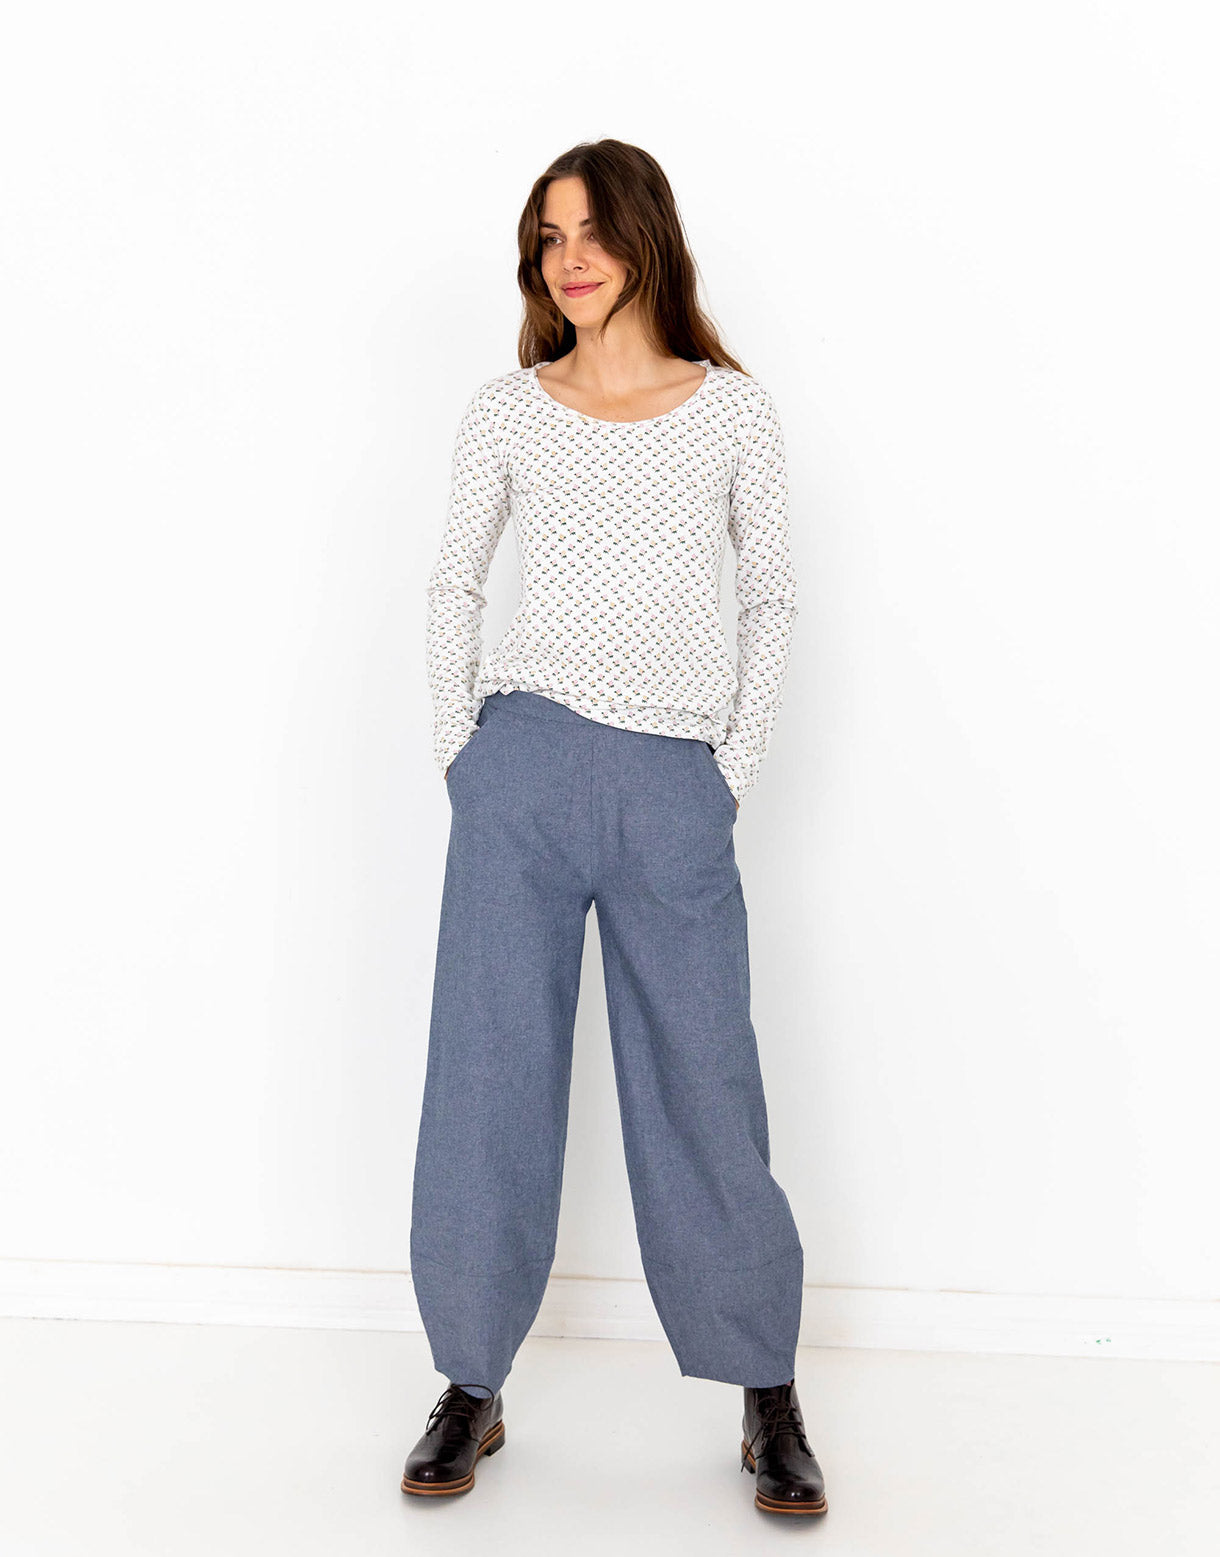 Sahara Pant in Chambray